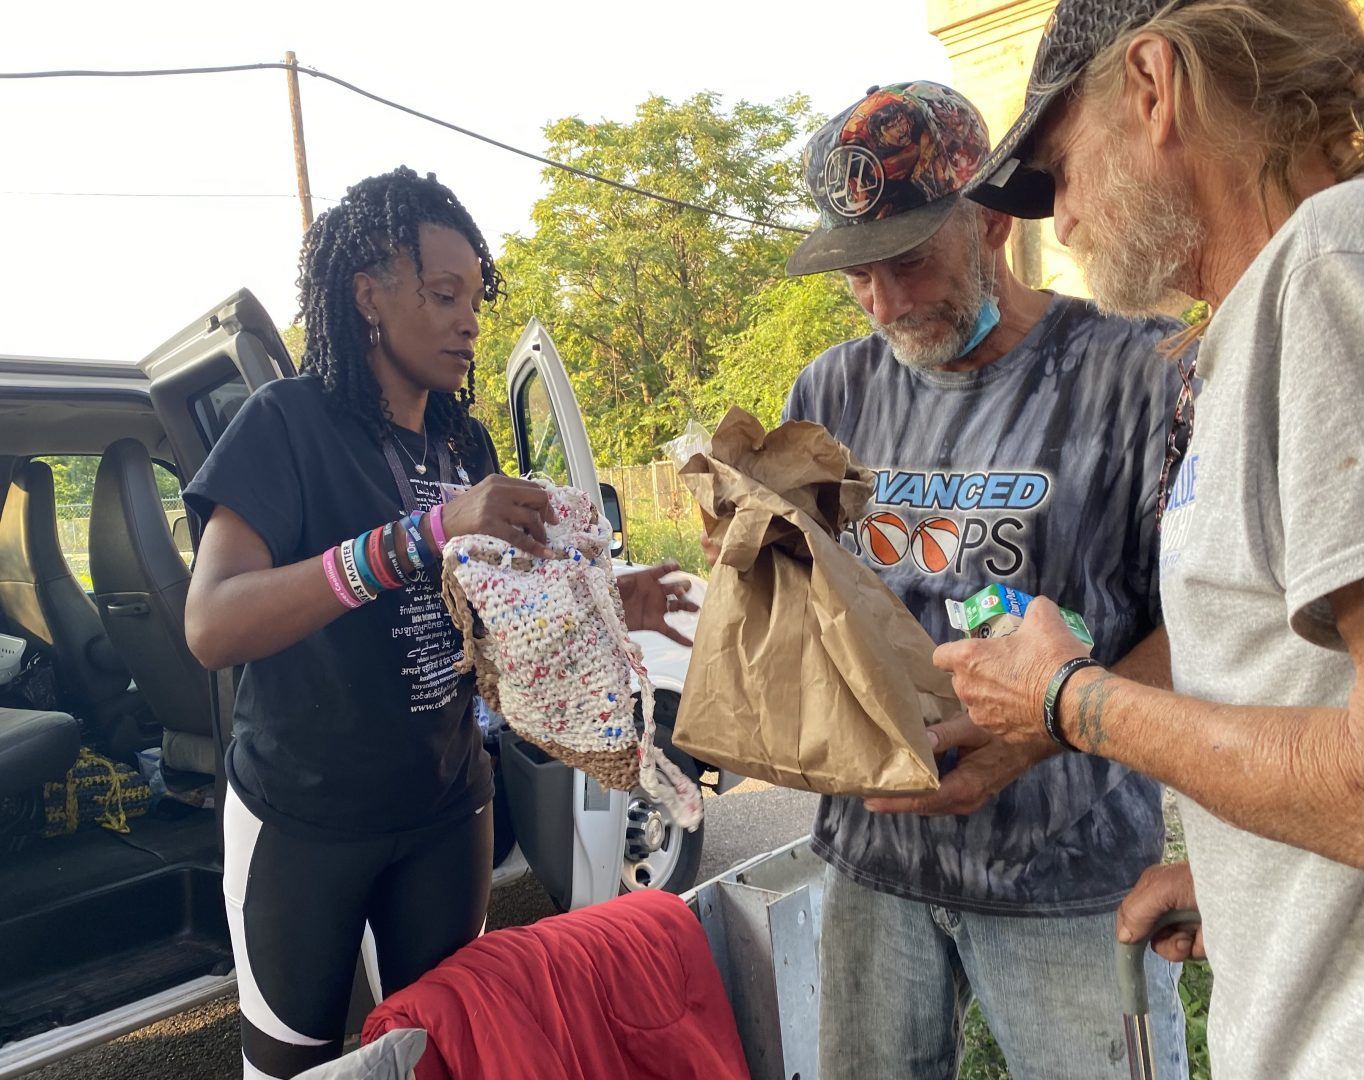 Outreach worker Aisha Mobley, at left, gives food and supplies to men living under a bridge in Harrisburg.